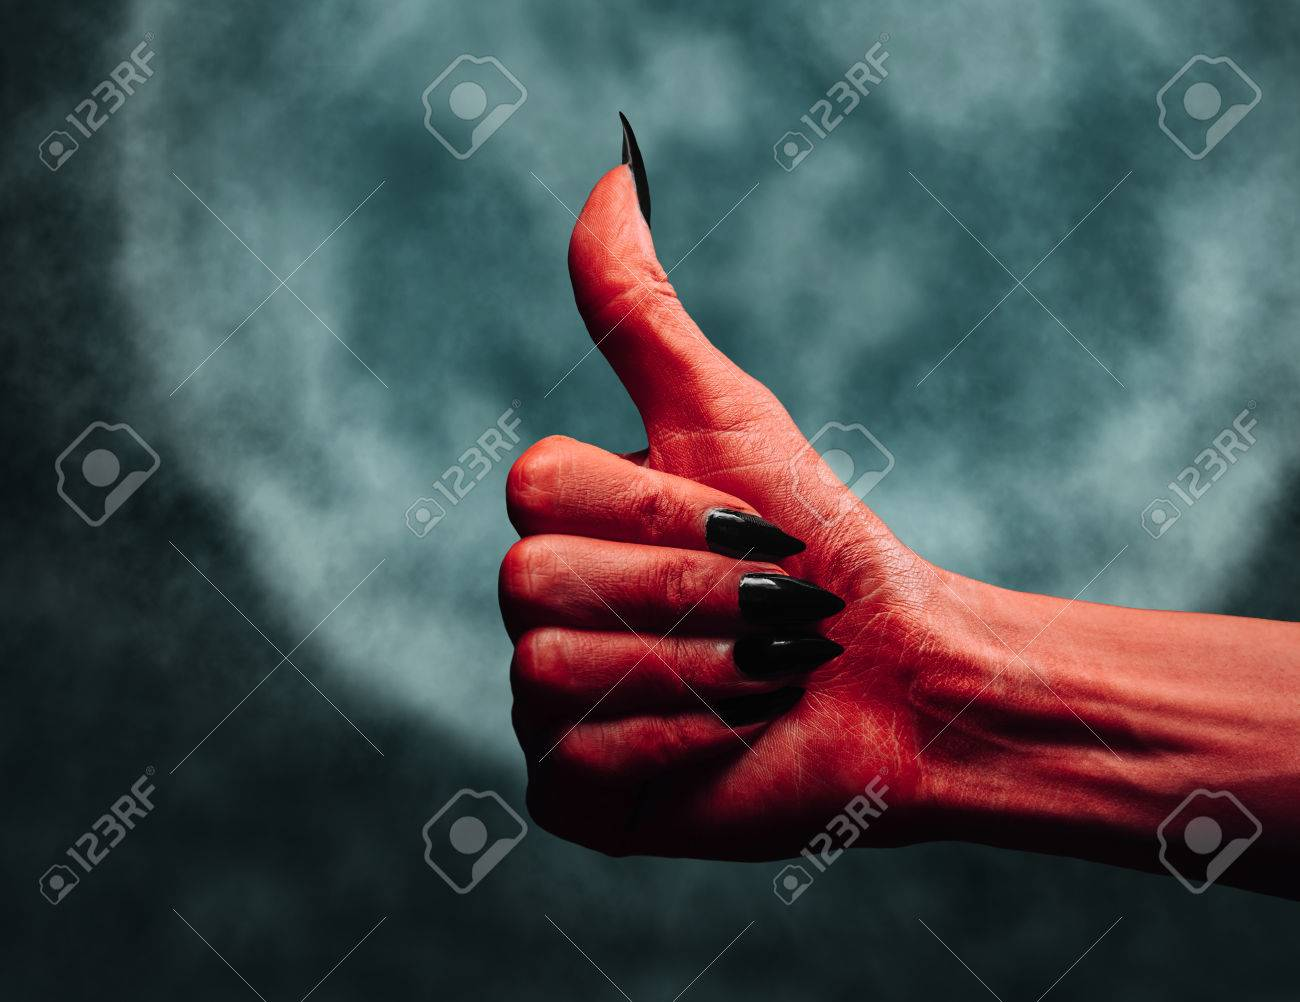 red demon or devil hand with thumb up gesture on full moon